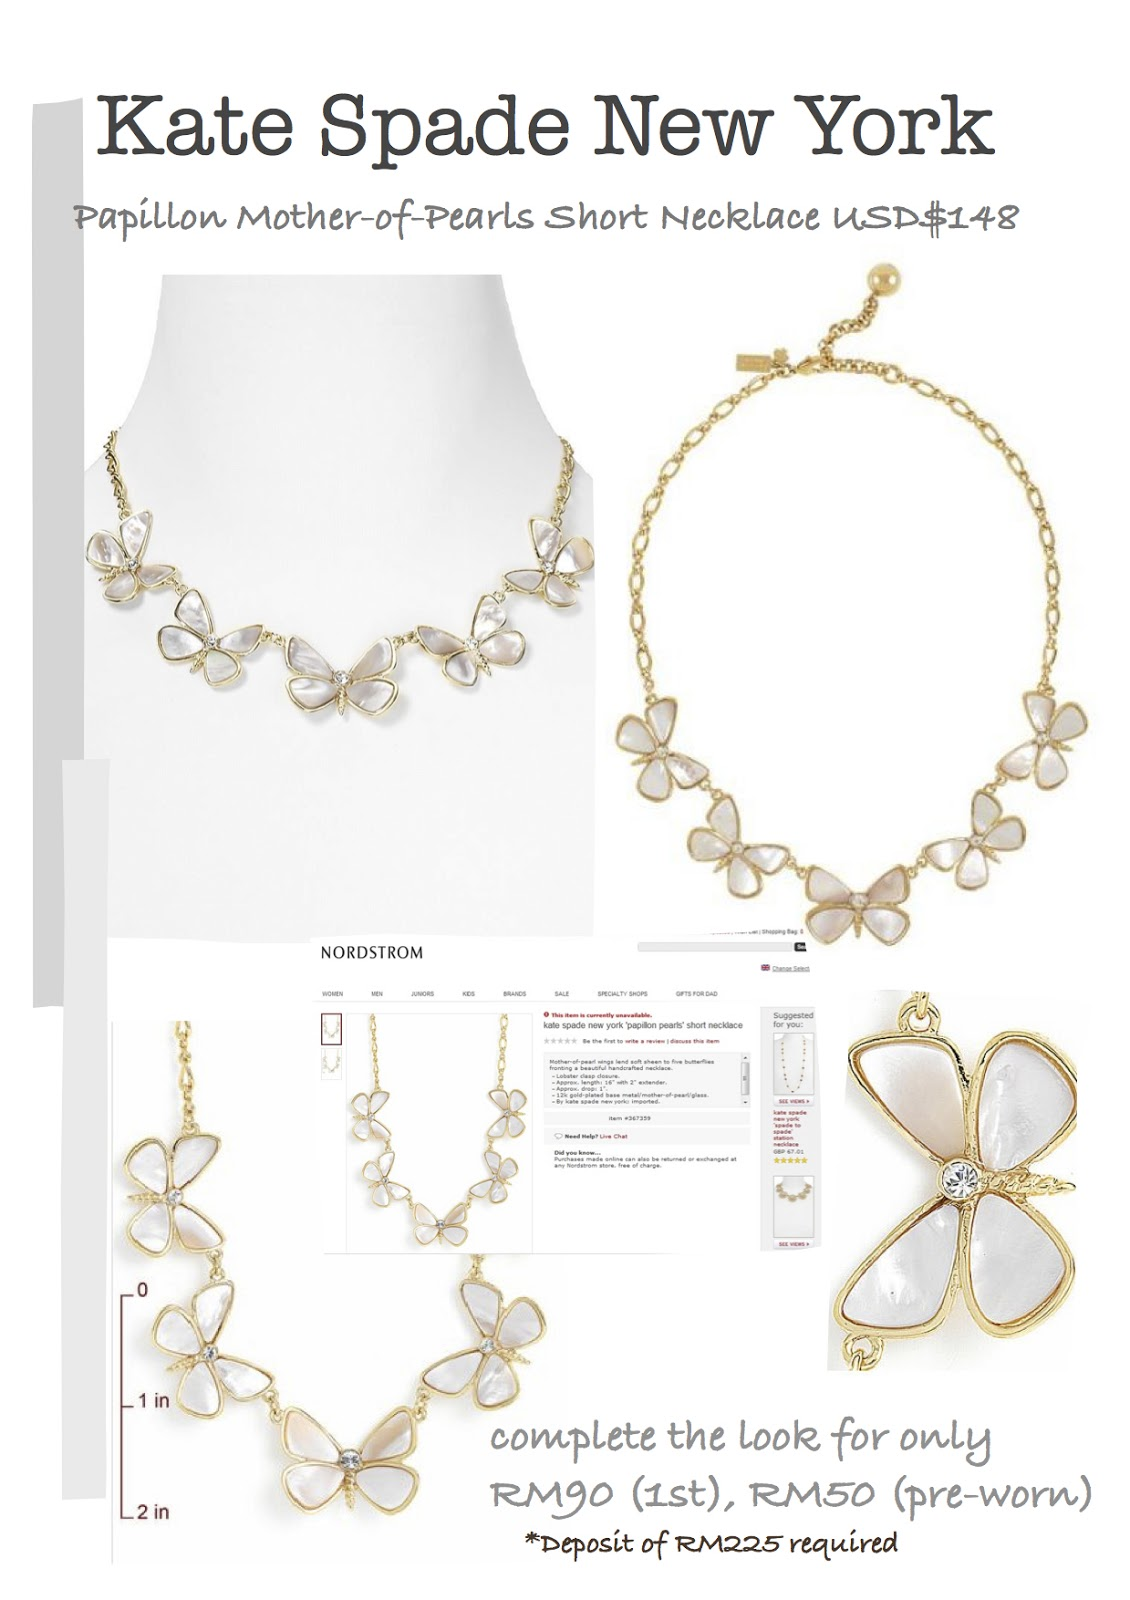 Kate spade new york papillon pearls short necklace usd 148 for Papillon new york